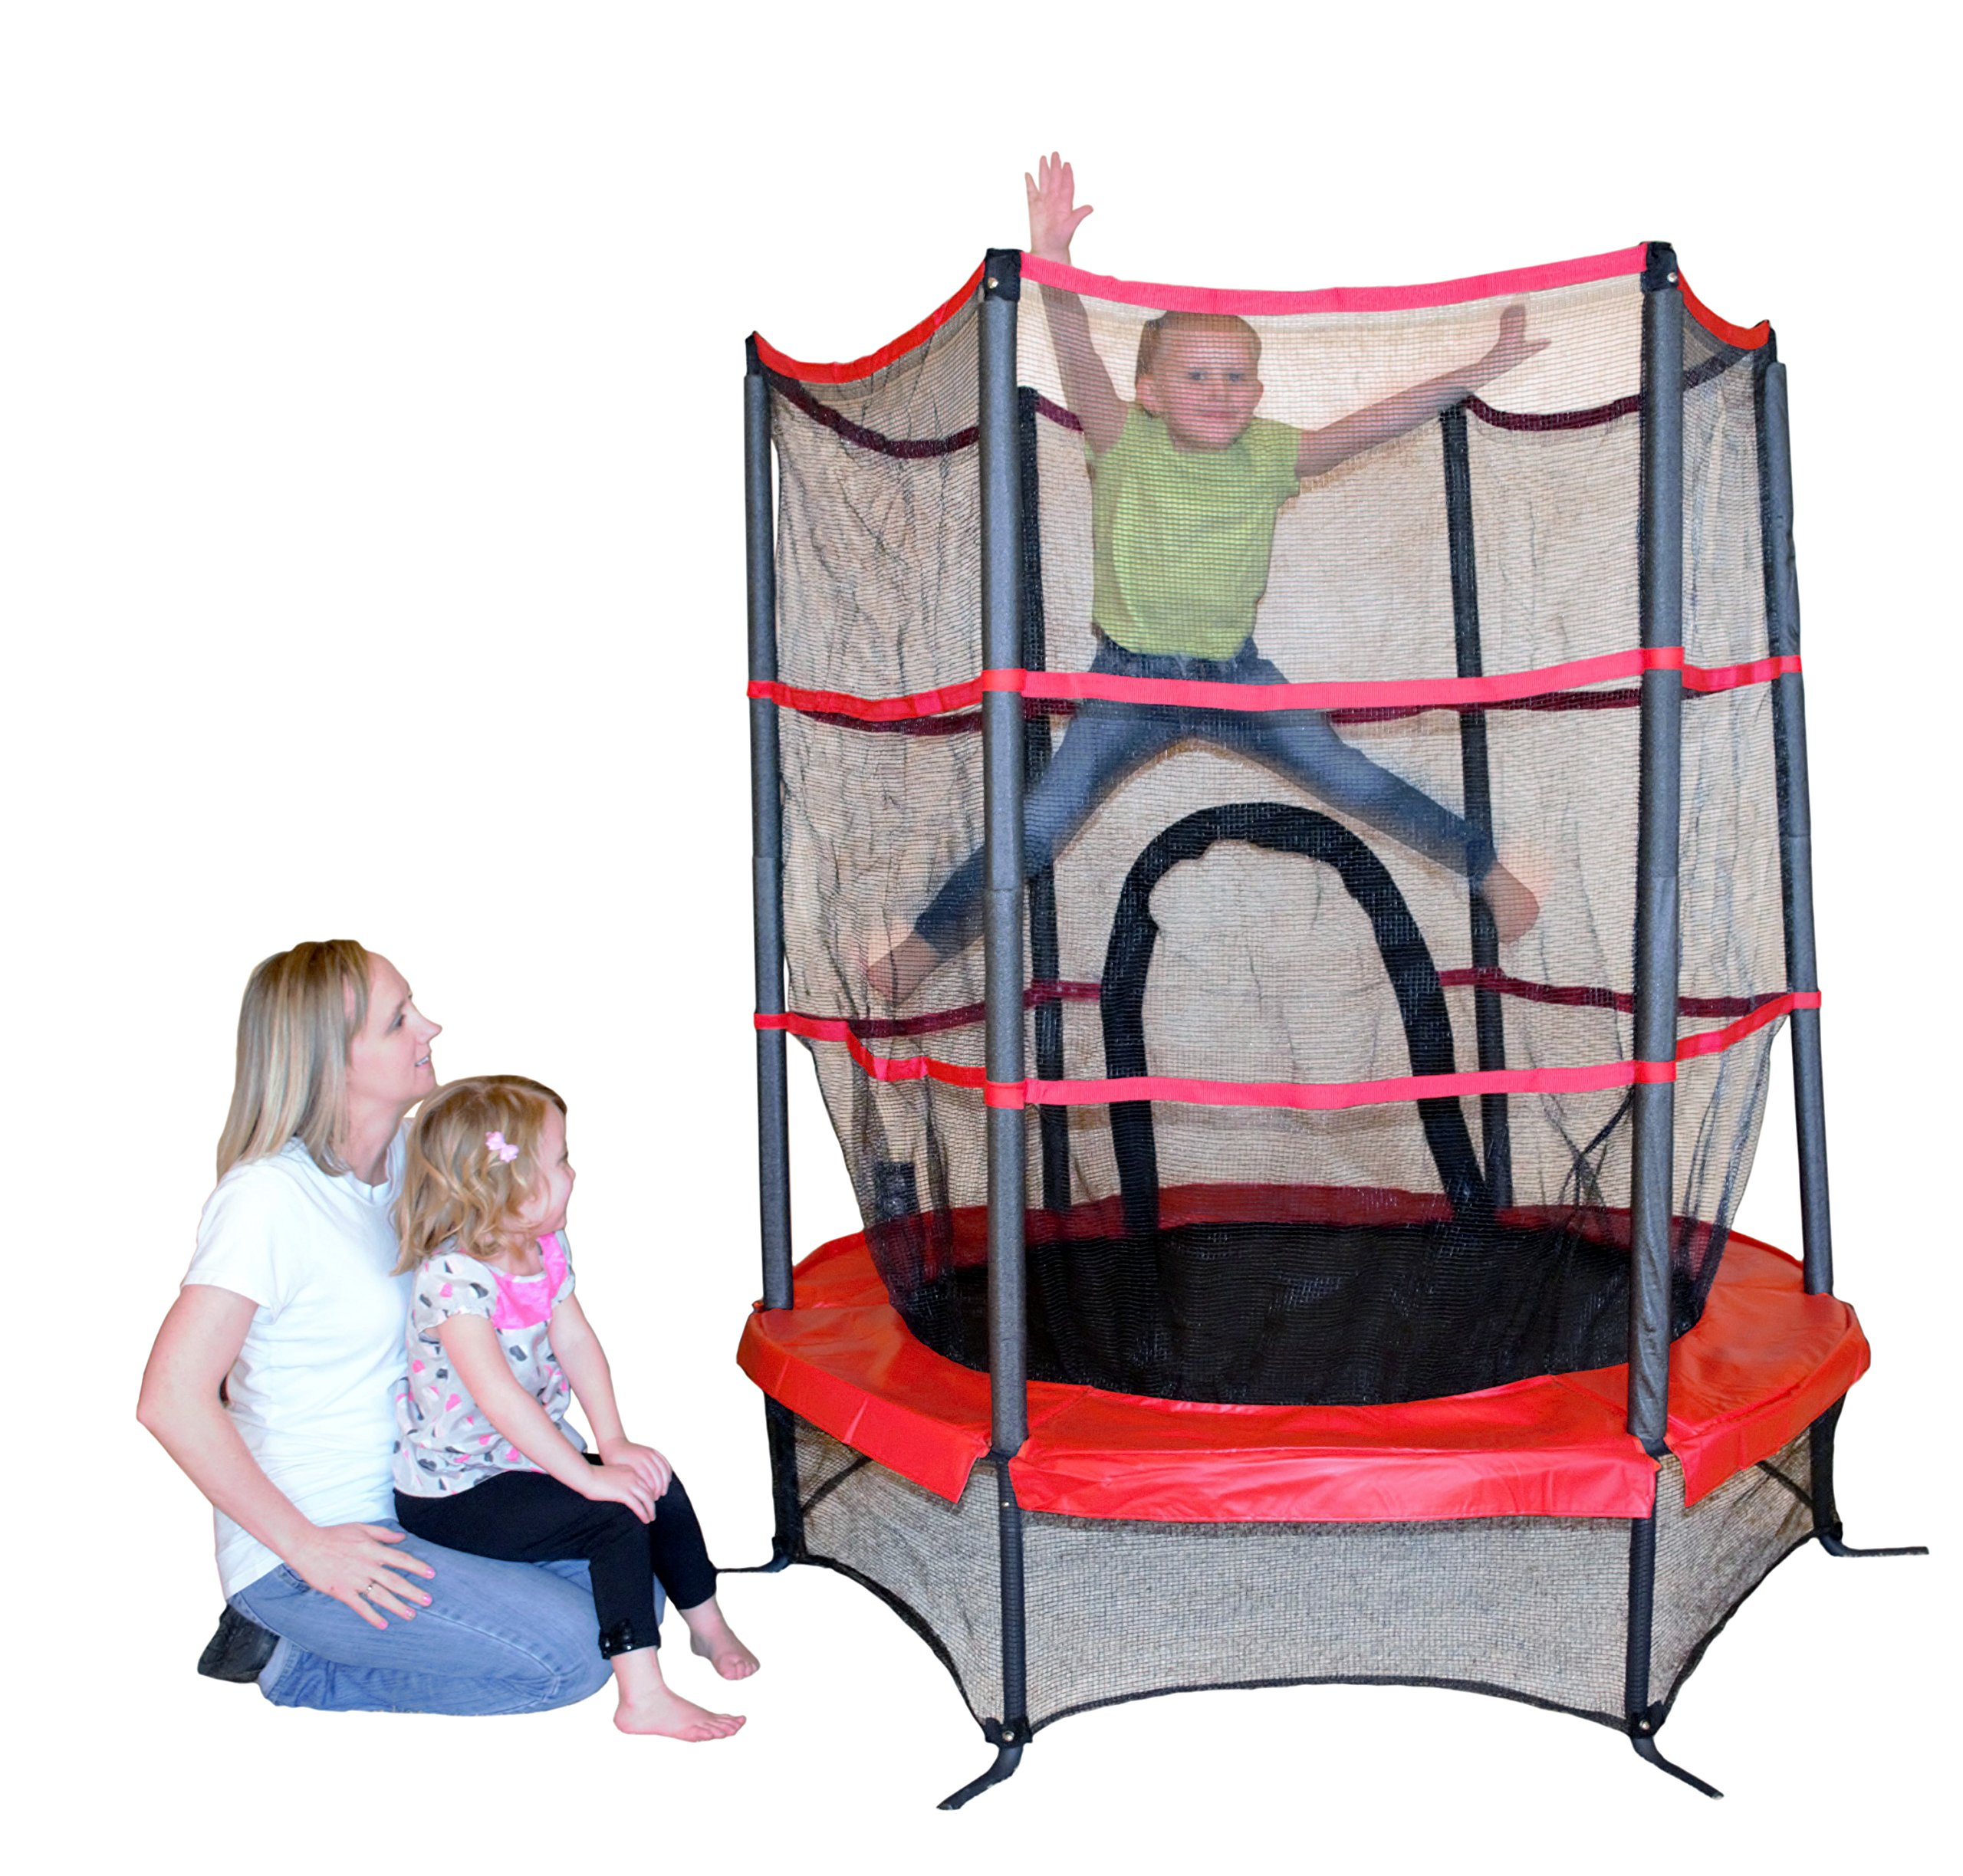 Propel Trampolines PTS55-RE Junior Trampoline with Enclosure, 55'', Red by Propel Trampolines